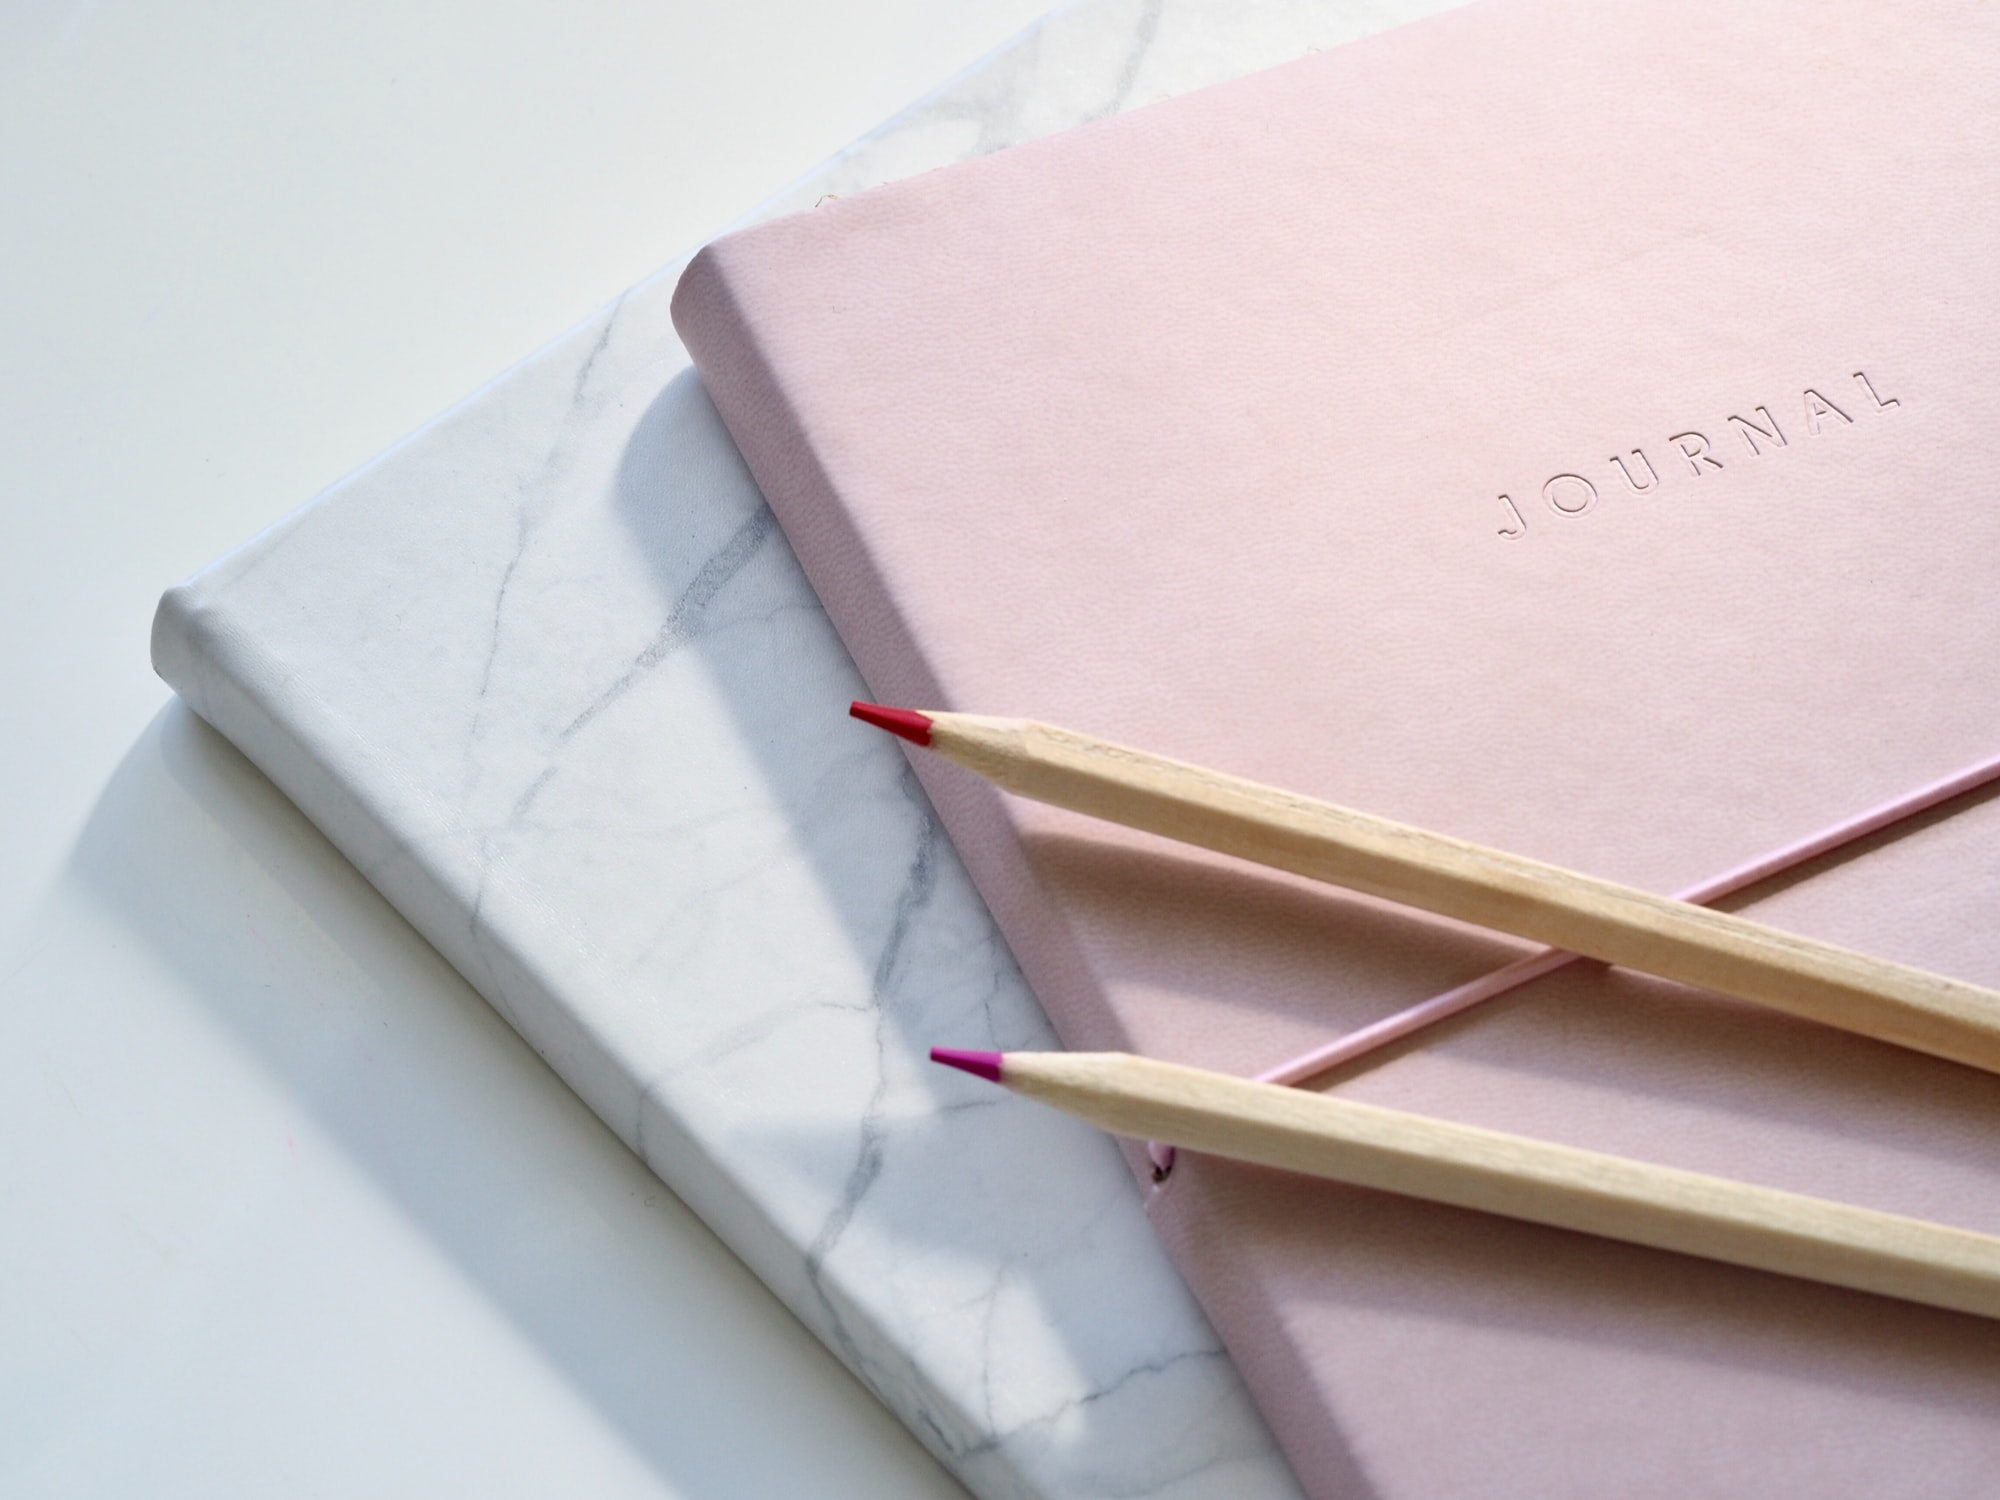 Journal first, share later.